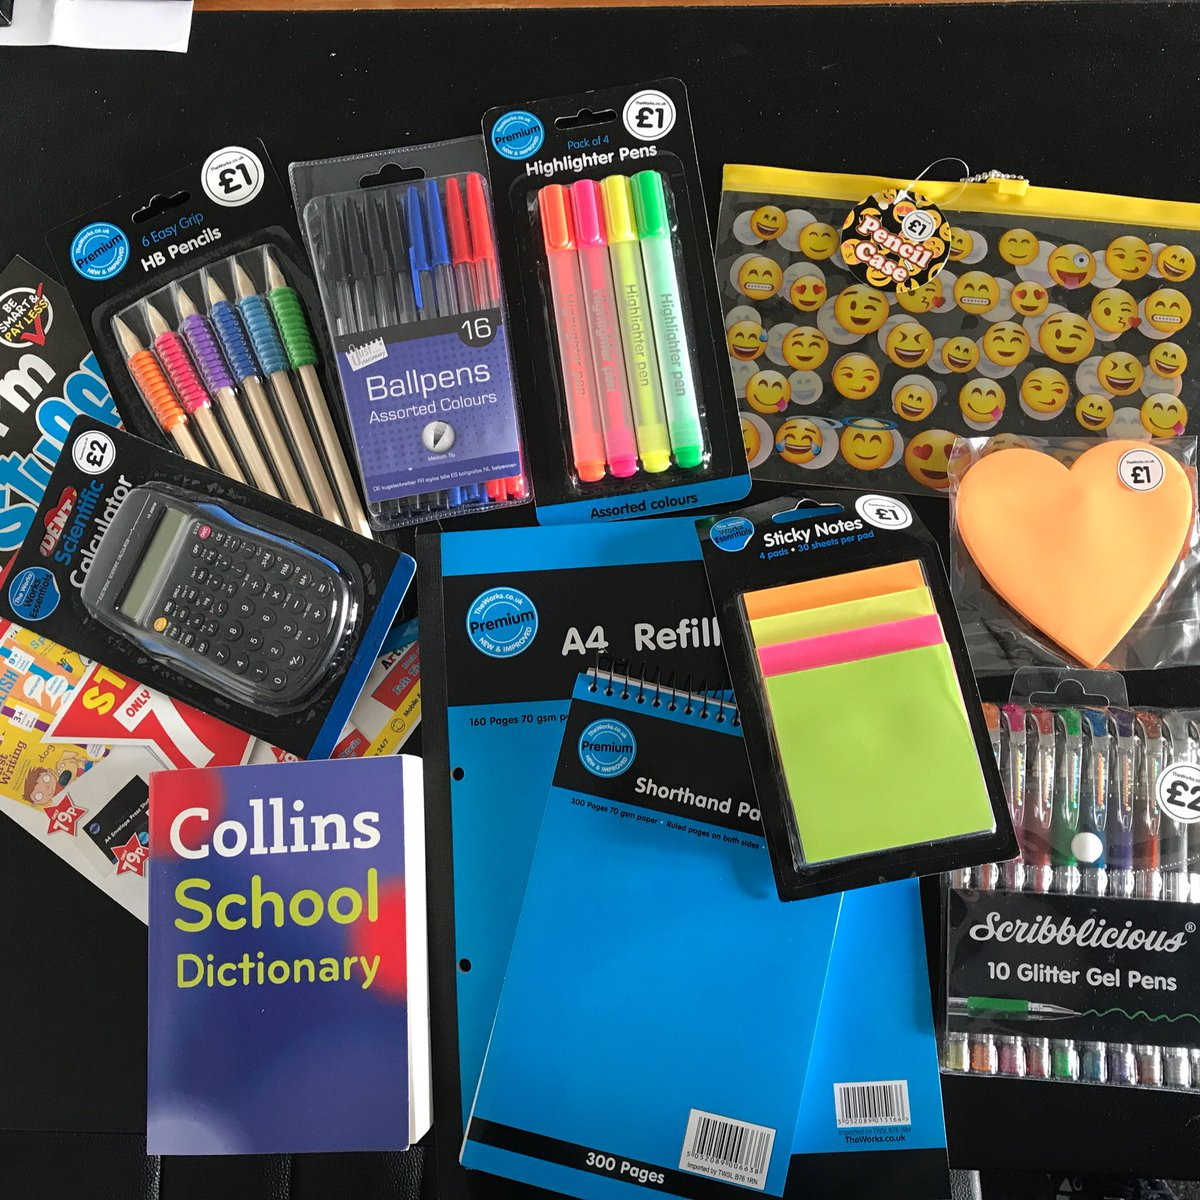 #giveaway want to #win this #awesome collection of #backtoschool essentials from @TheWorksStores just #followus &amp; #RT #free #stationery<br>http://pic.twitter.com/wtd4HwyTTG